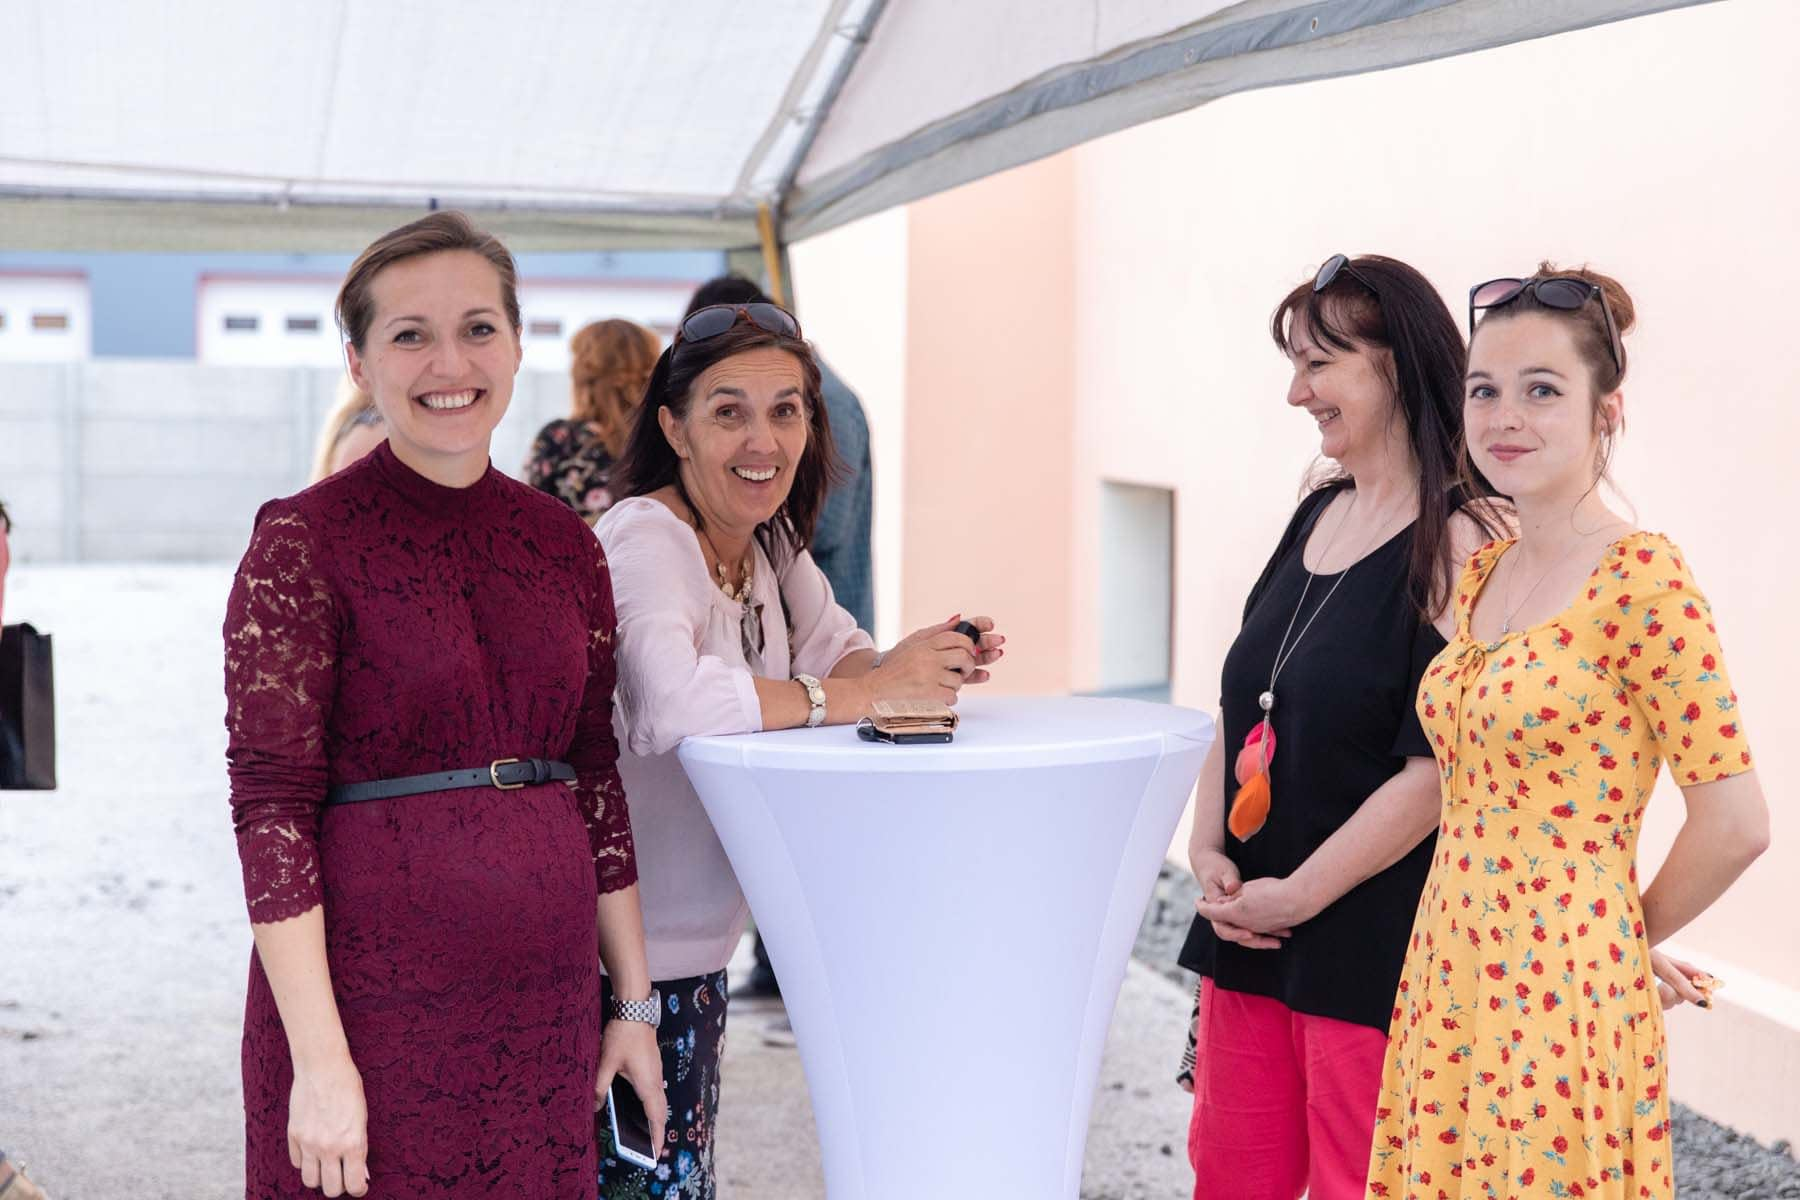 Ms. Anna Humbert (left) with guests of the event